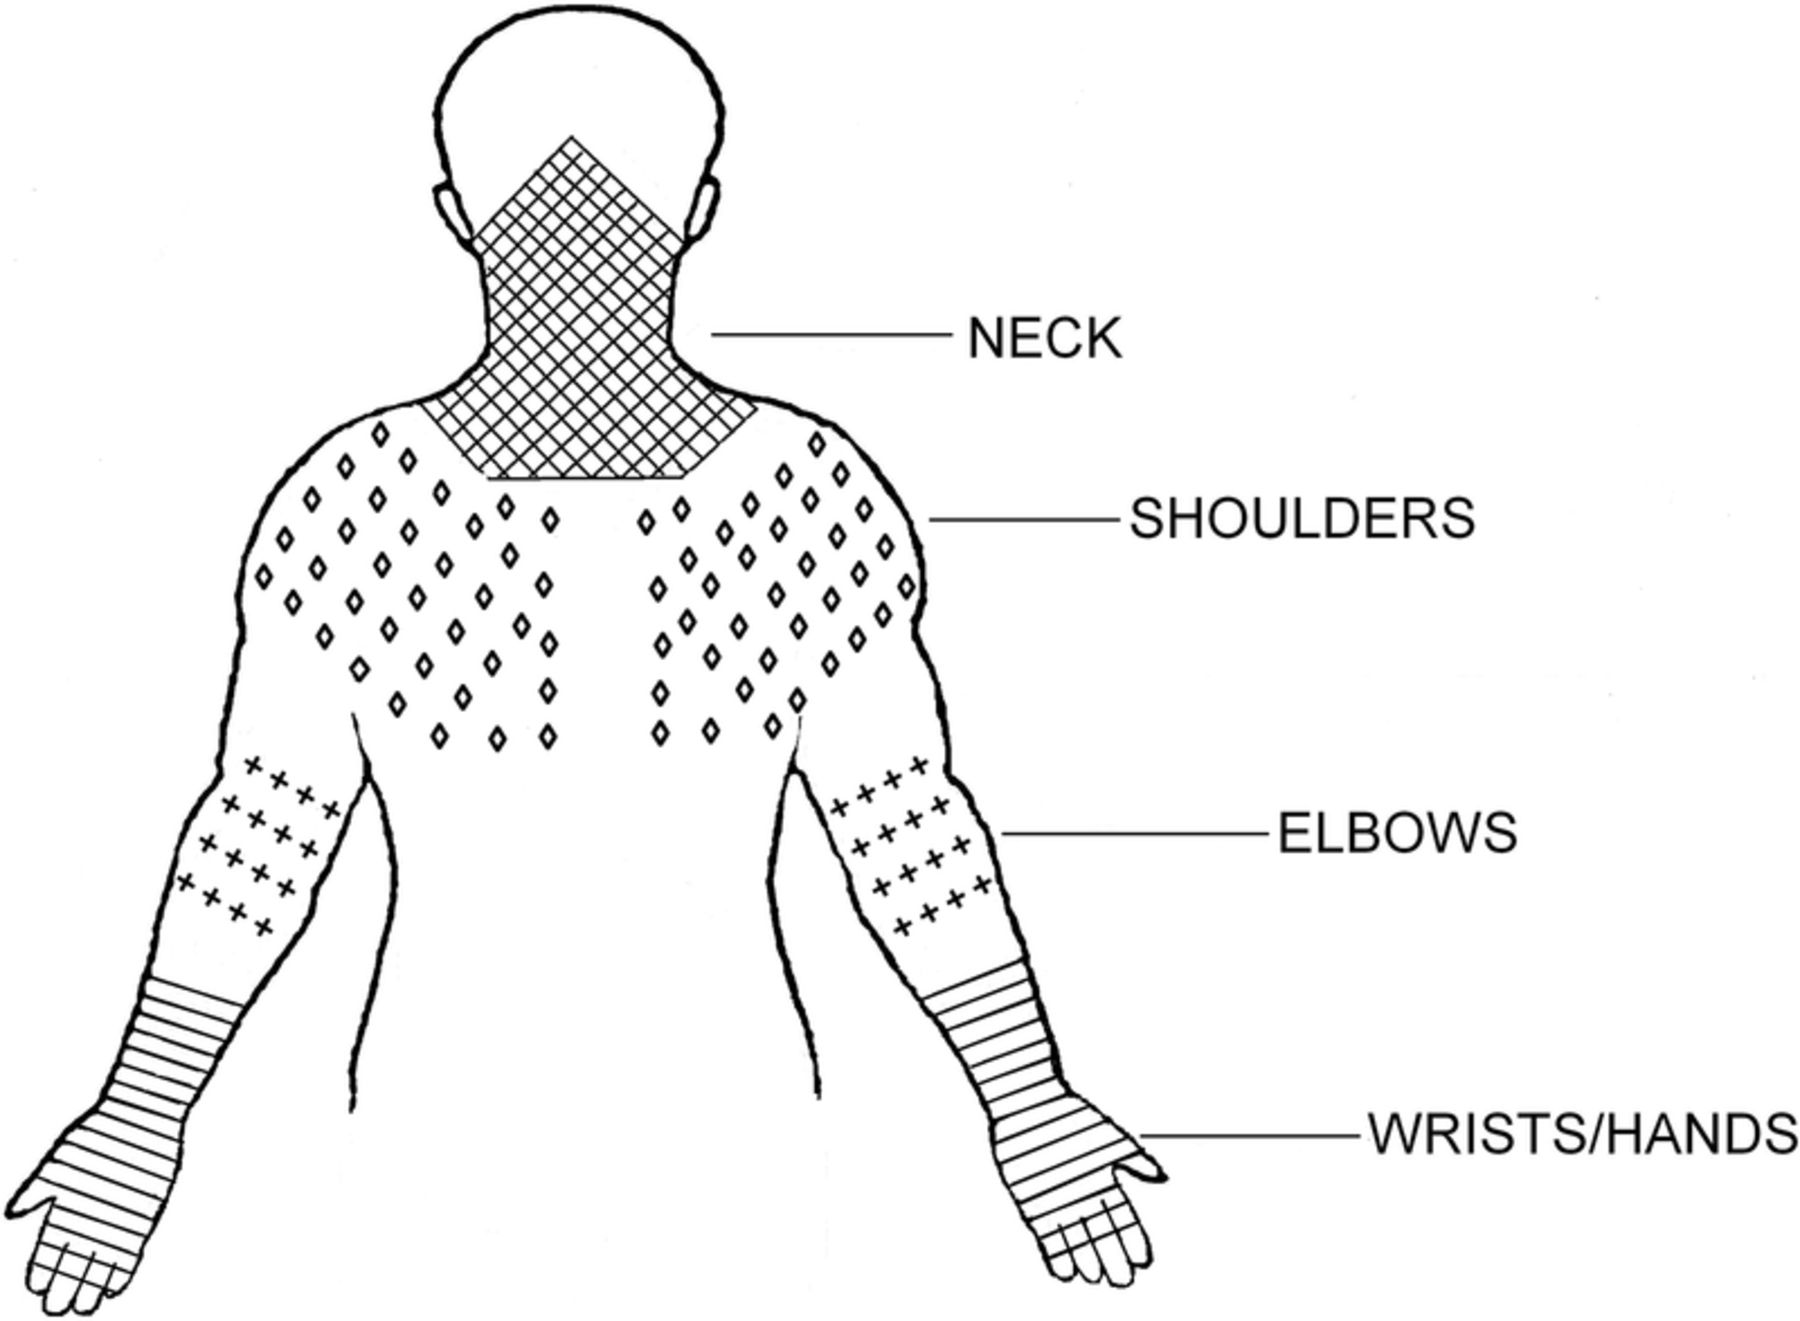 Prevalence Of Work Related Musculoskeletal Symptoms Of The